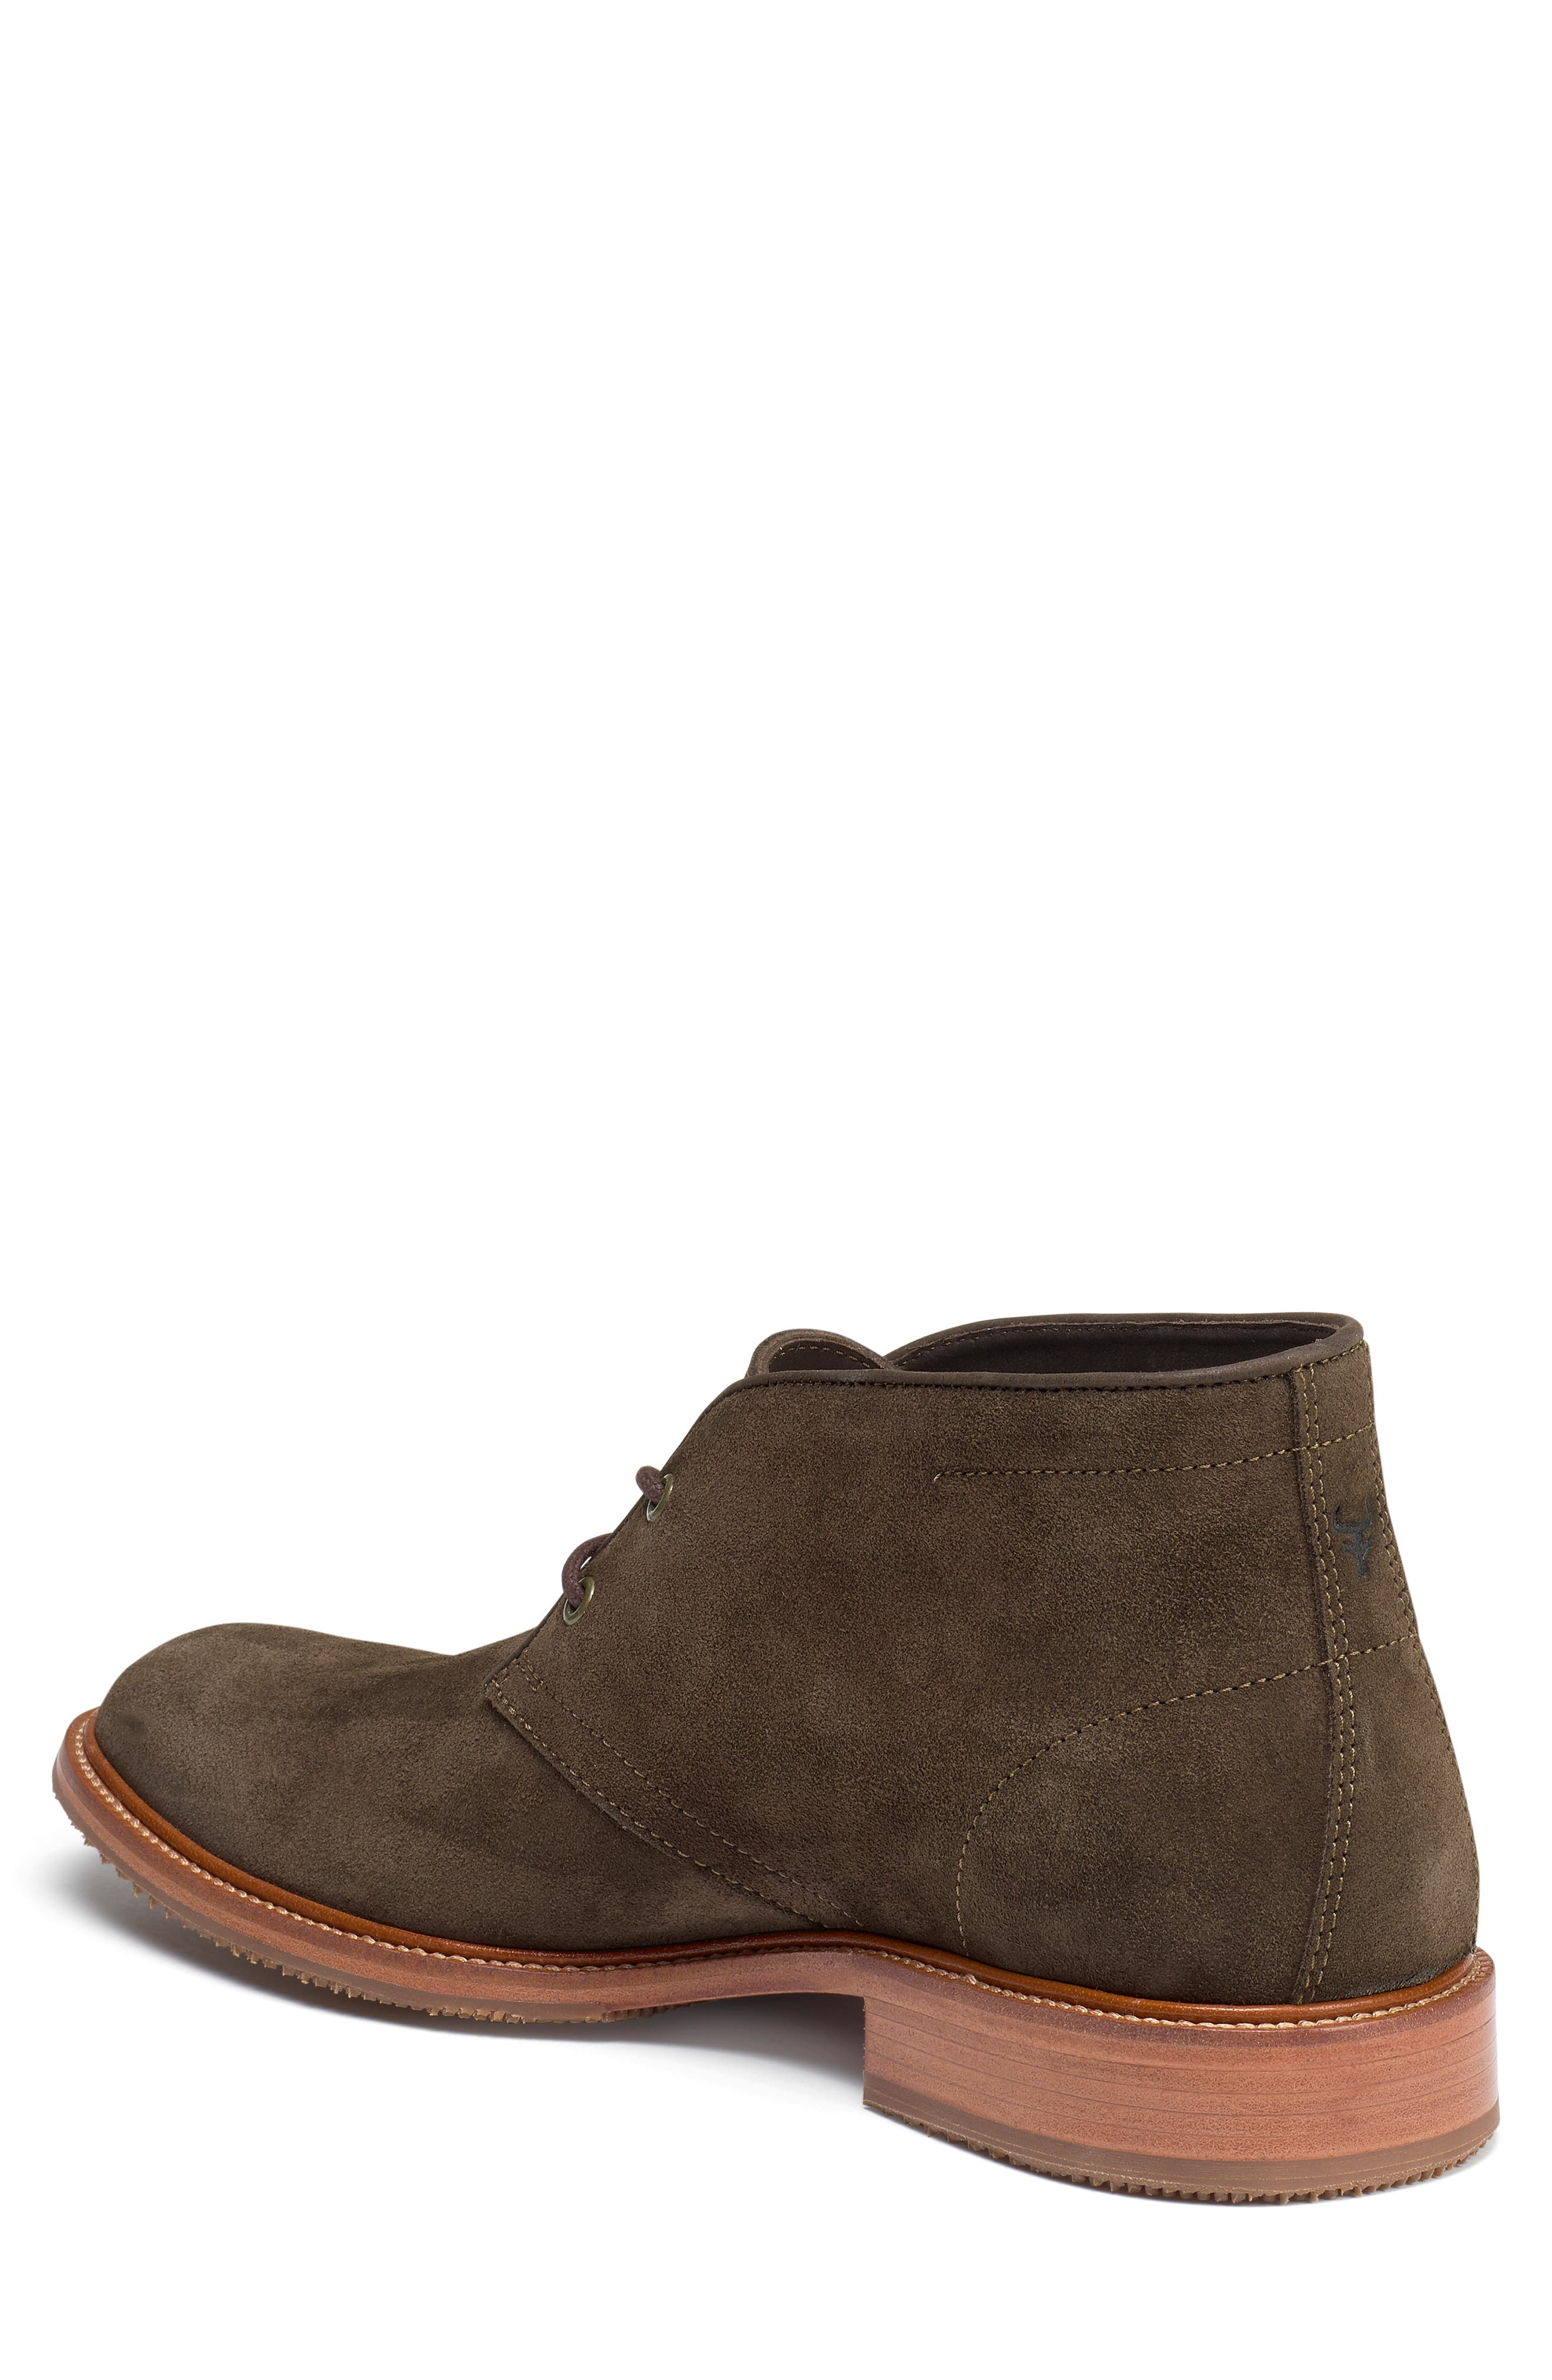 TRASK, Landers Chukka Boot, Alternate thumbnail 2, color, OLIVE SUEDE